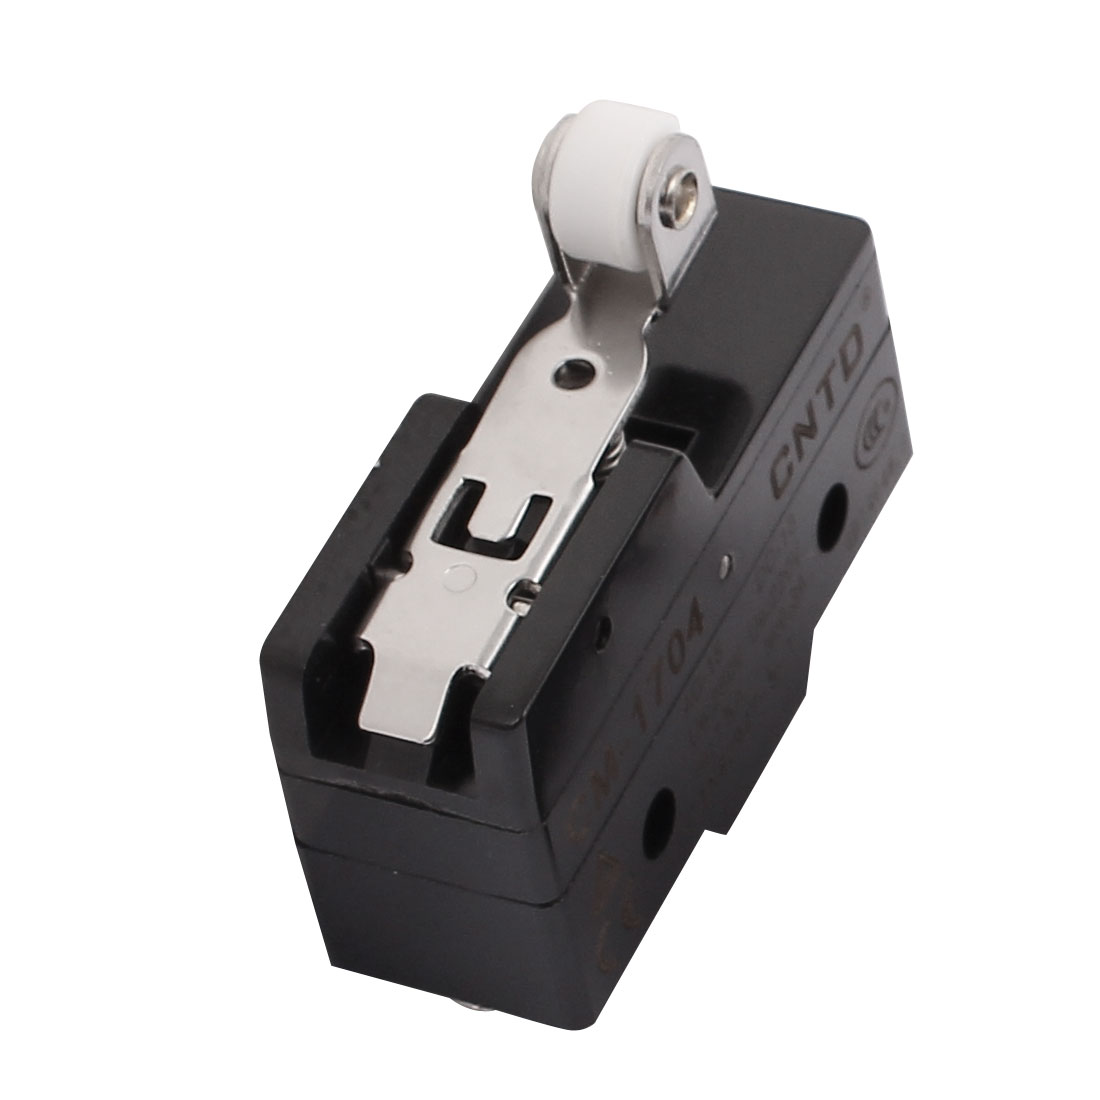 CM-1704 SPDT Momentary Roller Hinge Lever Arm Limit Switch Microswitch